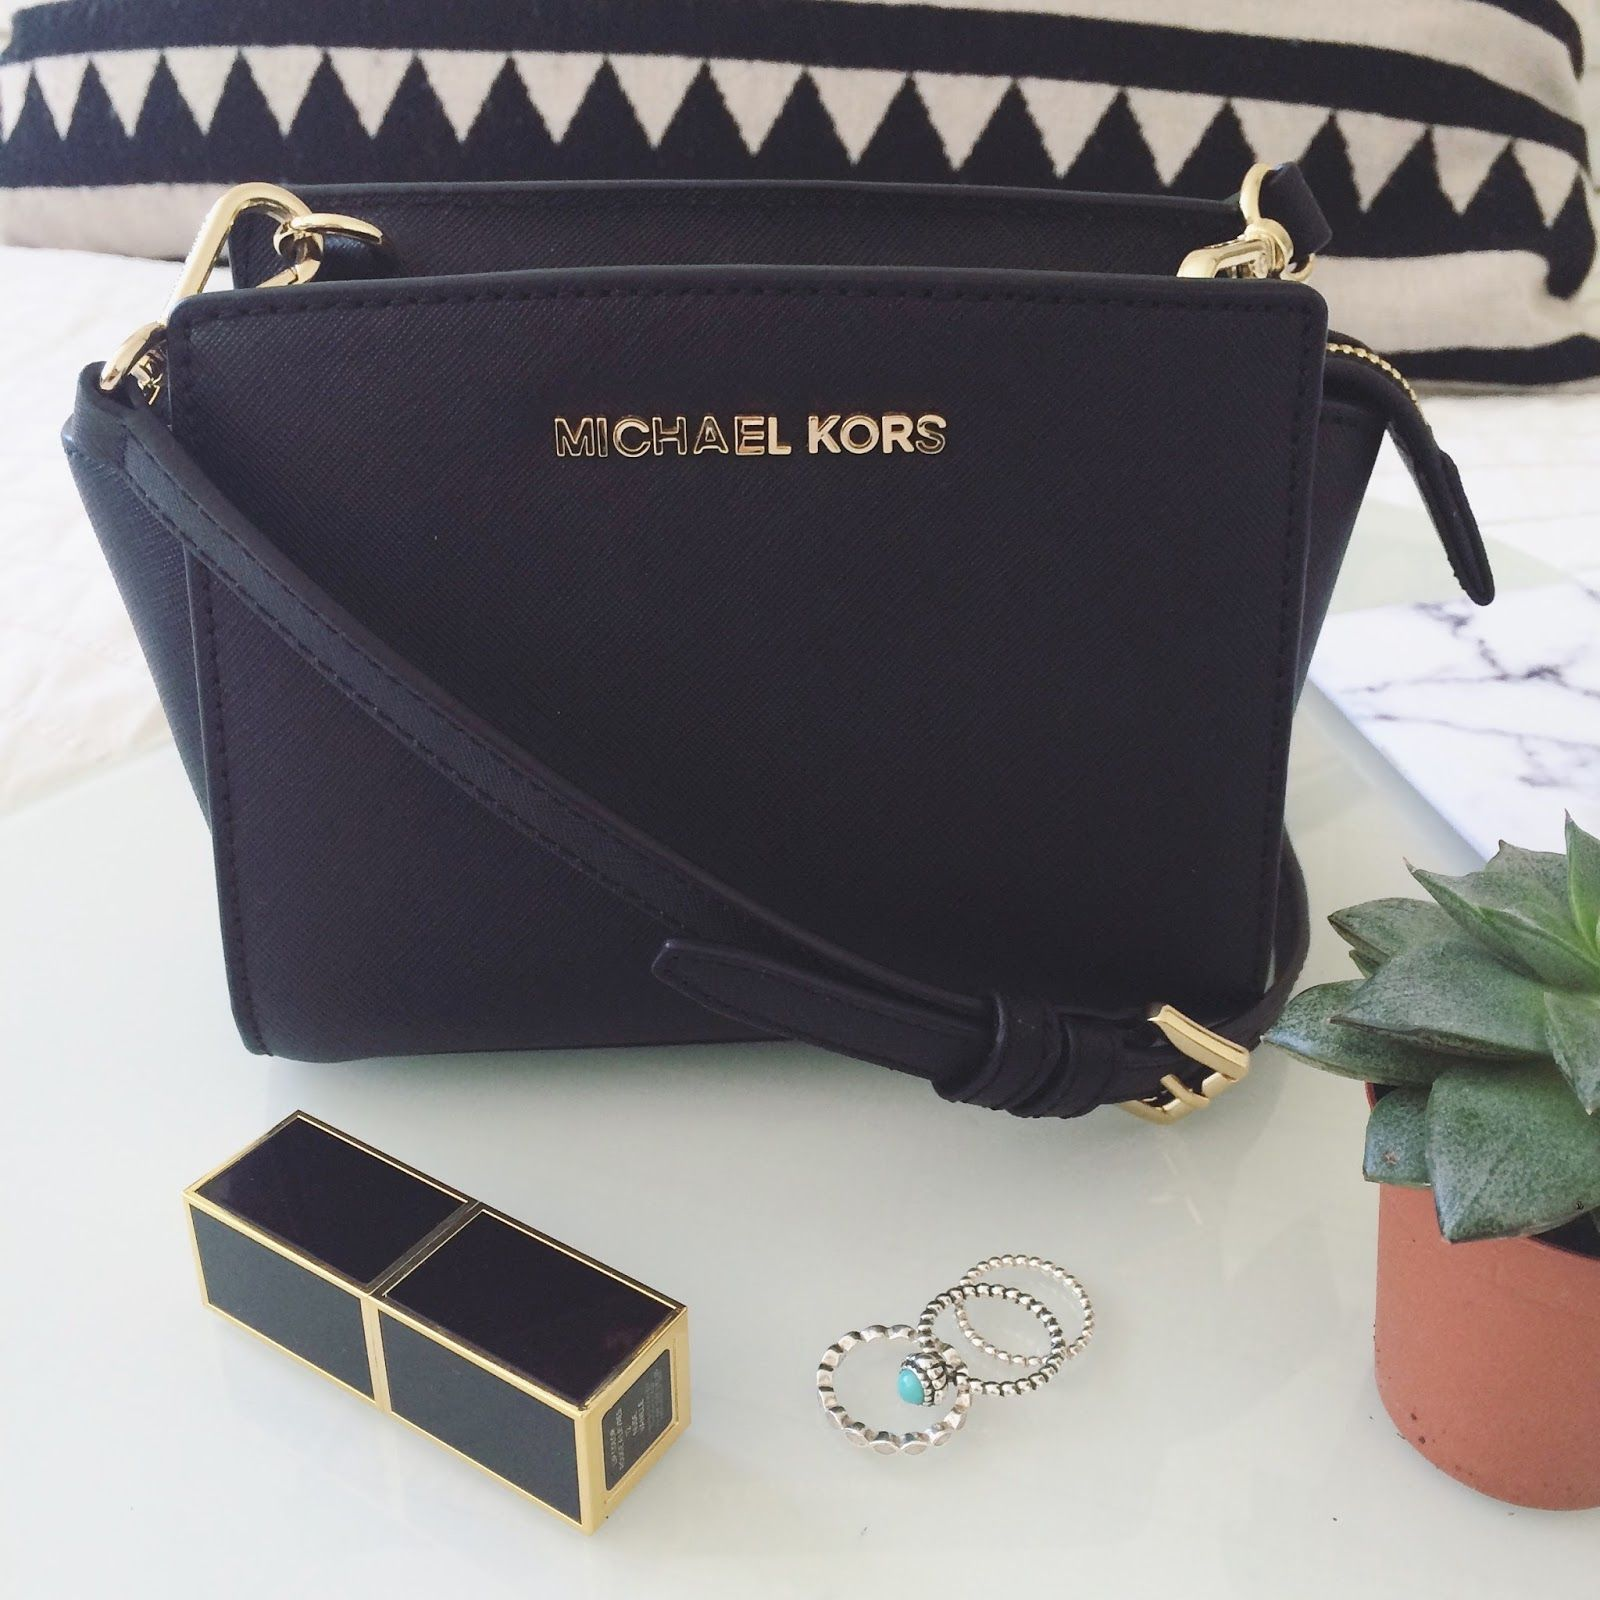 Michael Kors Mini Selma | Handbags michael kors, Purses